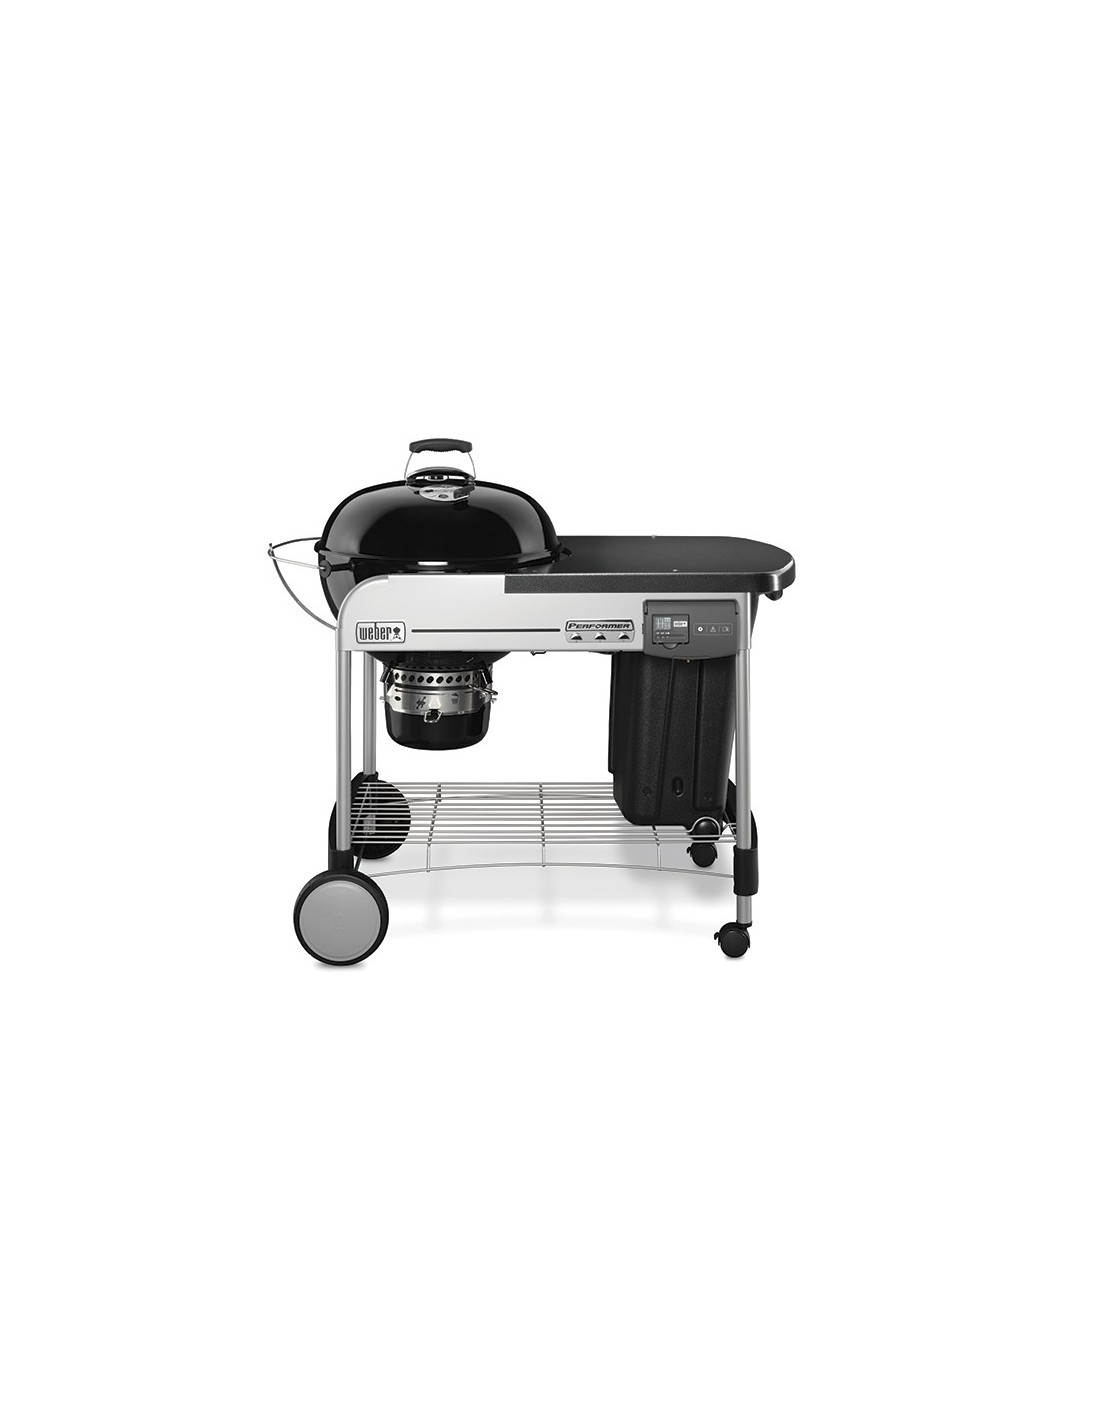 barbecue weber charbon performer deluxe 57cm gbs housse. Black Bedroom Furniture Sets. Home Design Ideas